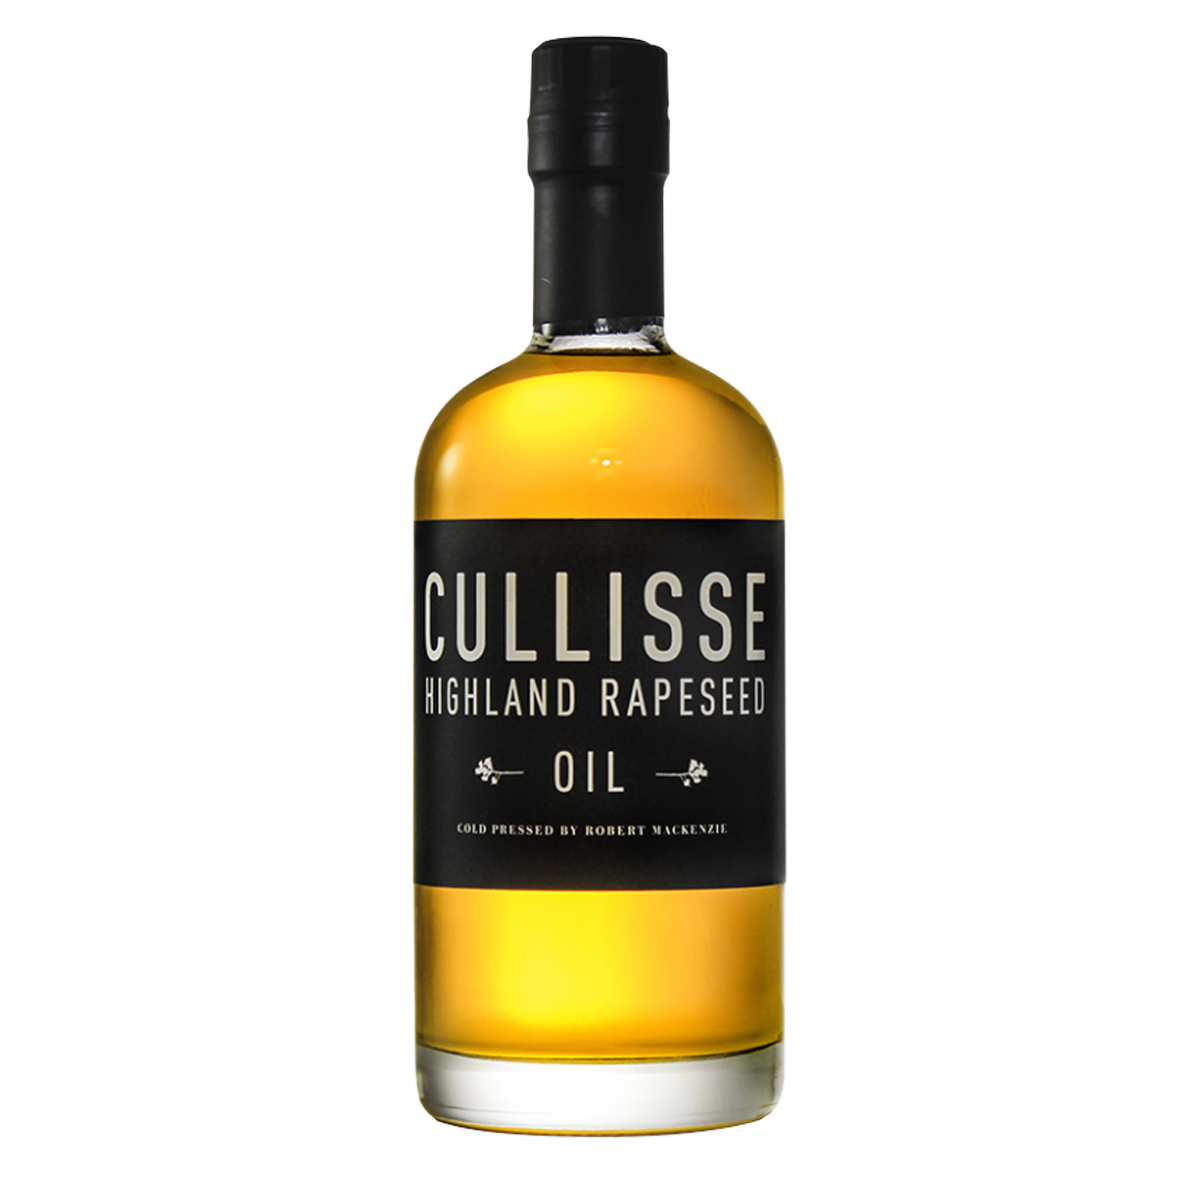 Bottle of Cullisse Rapeseed Oil